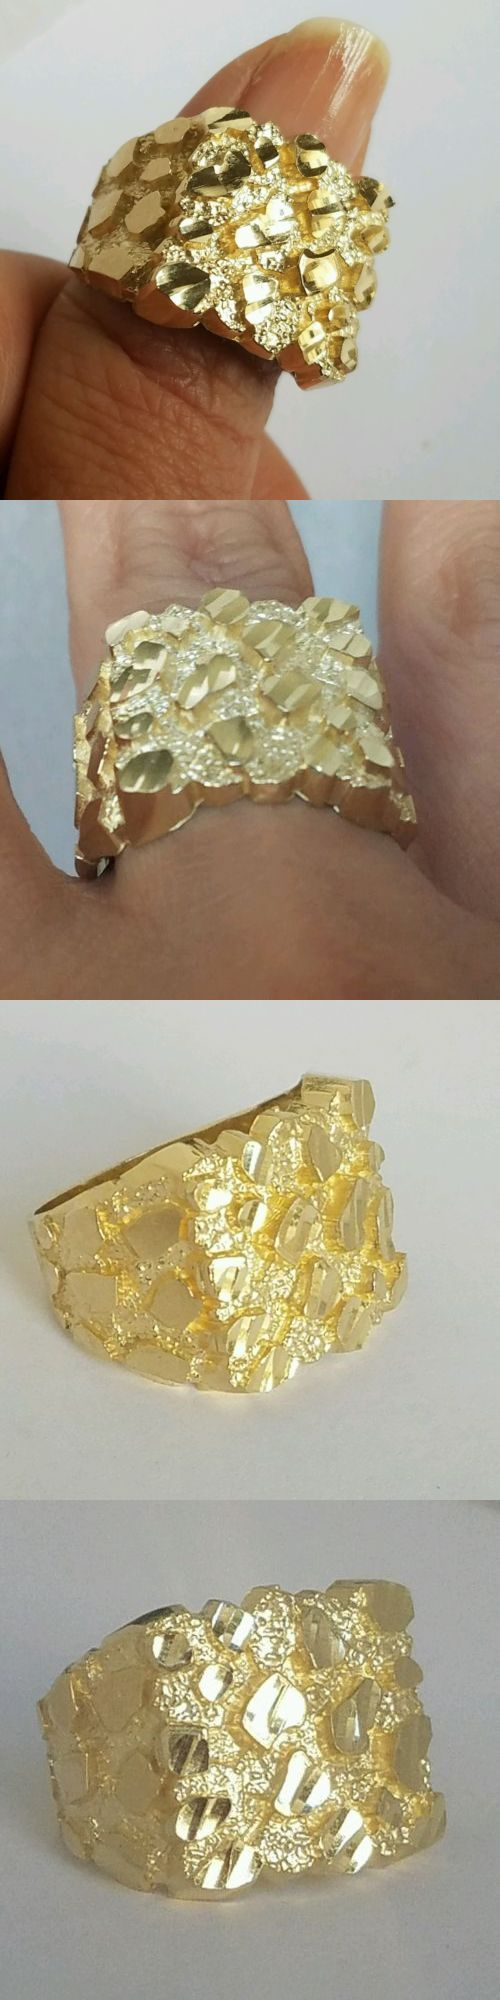 Men Jewelry Big Men S 10k Yellow Gold Nugget Ring Size 9 10 11 12 Buy It Now Only 295 On Ebay Gold Nugget Ring Jewelry Sweet Jewelry